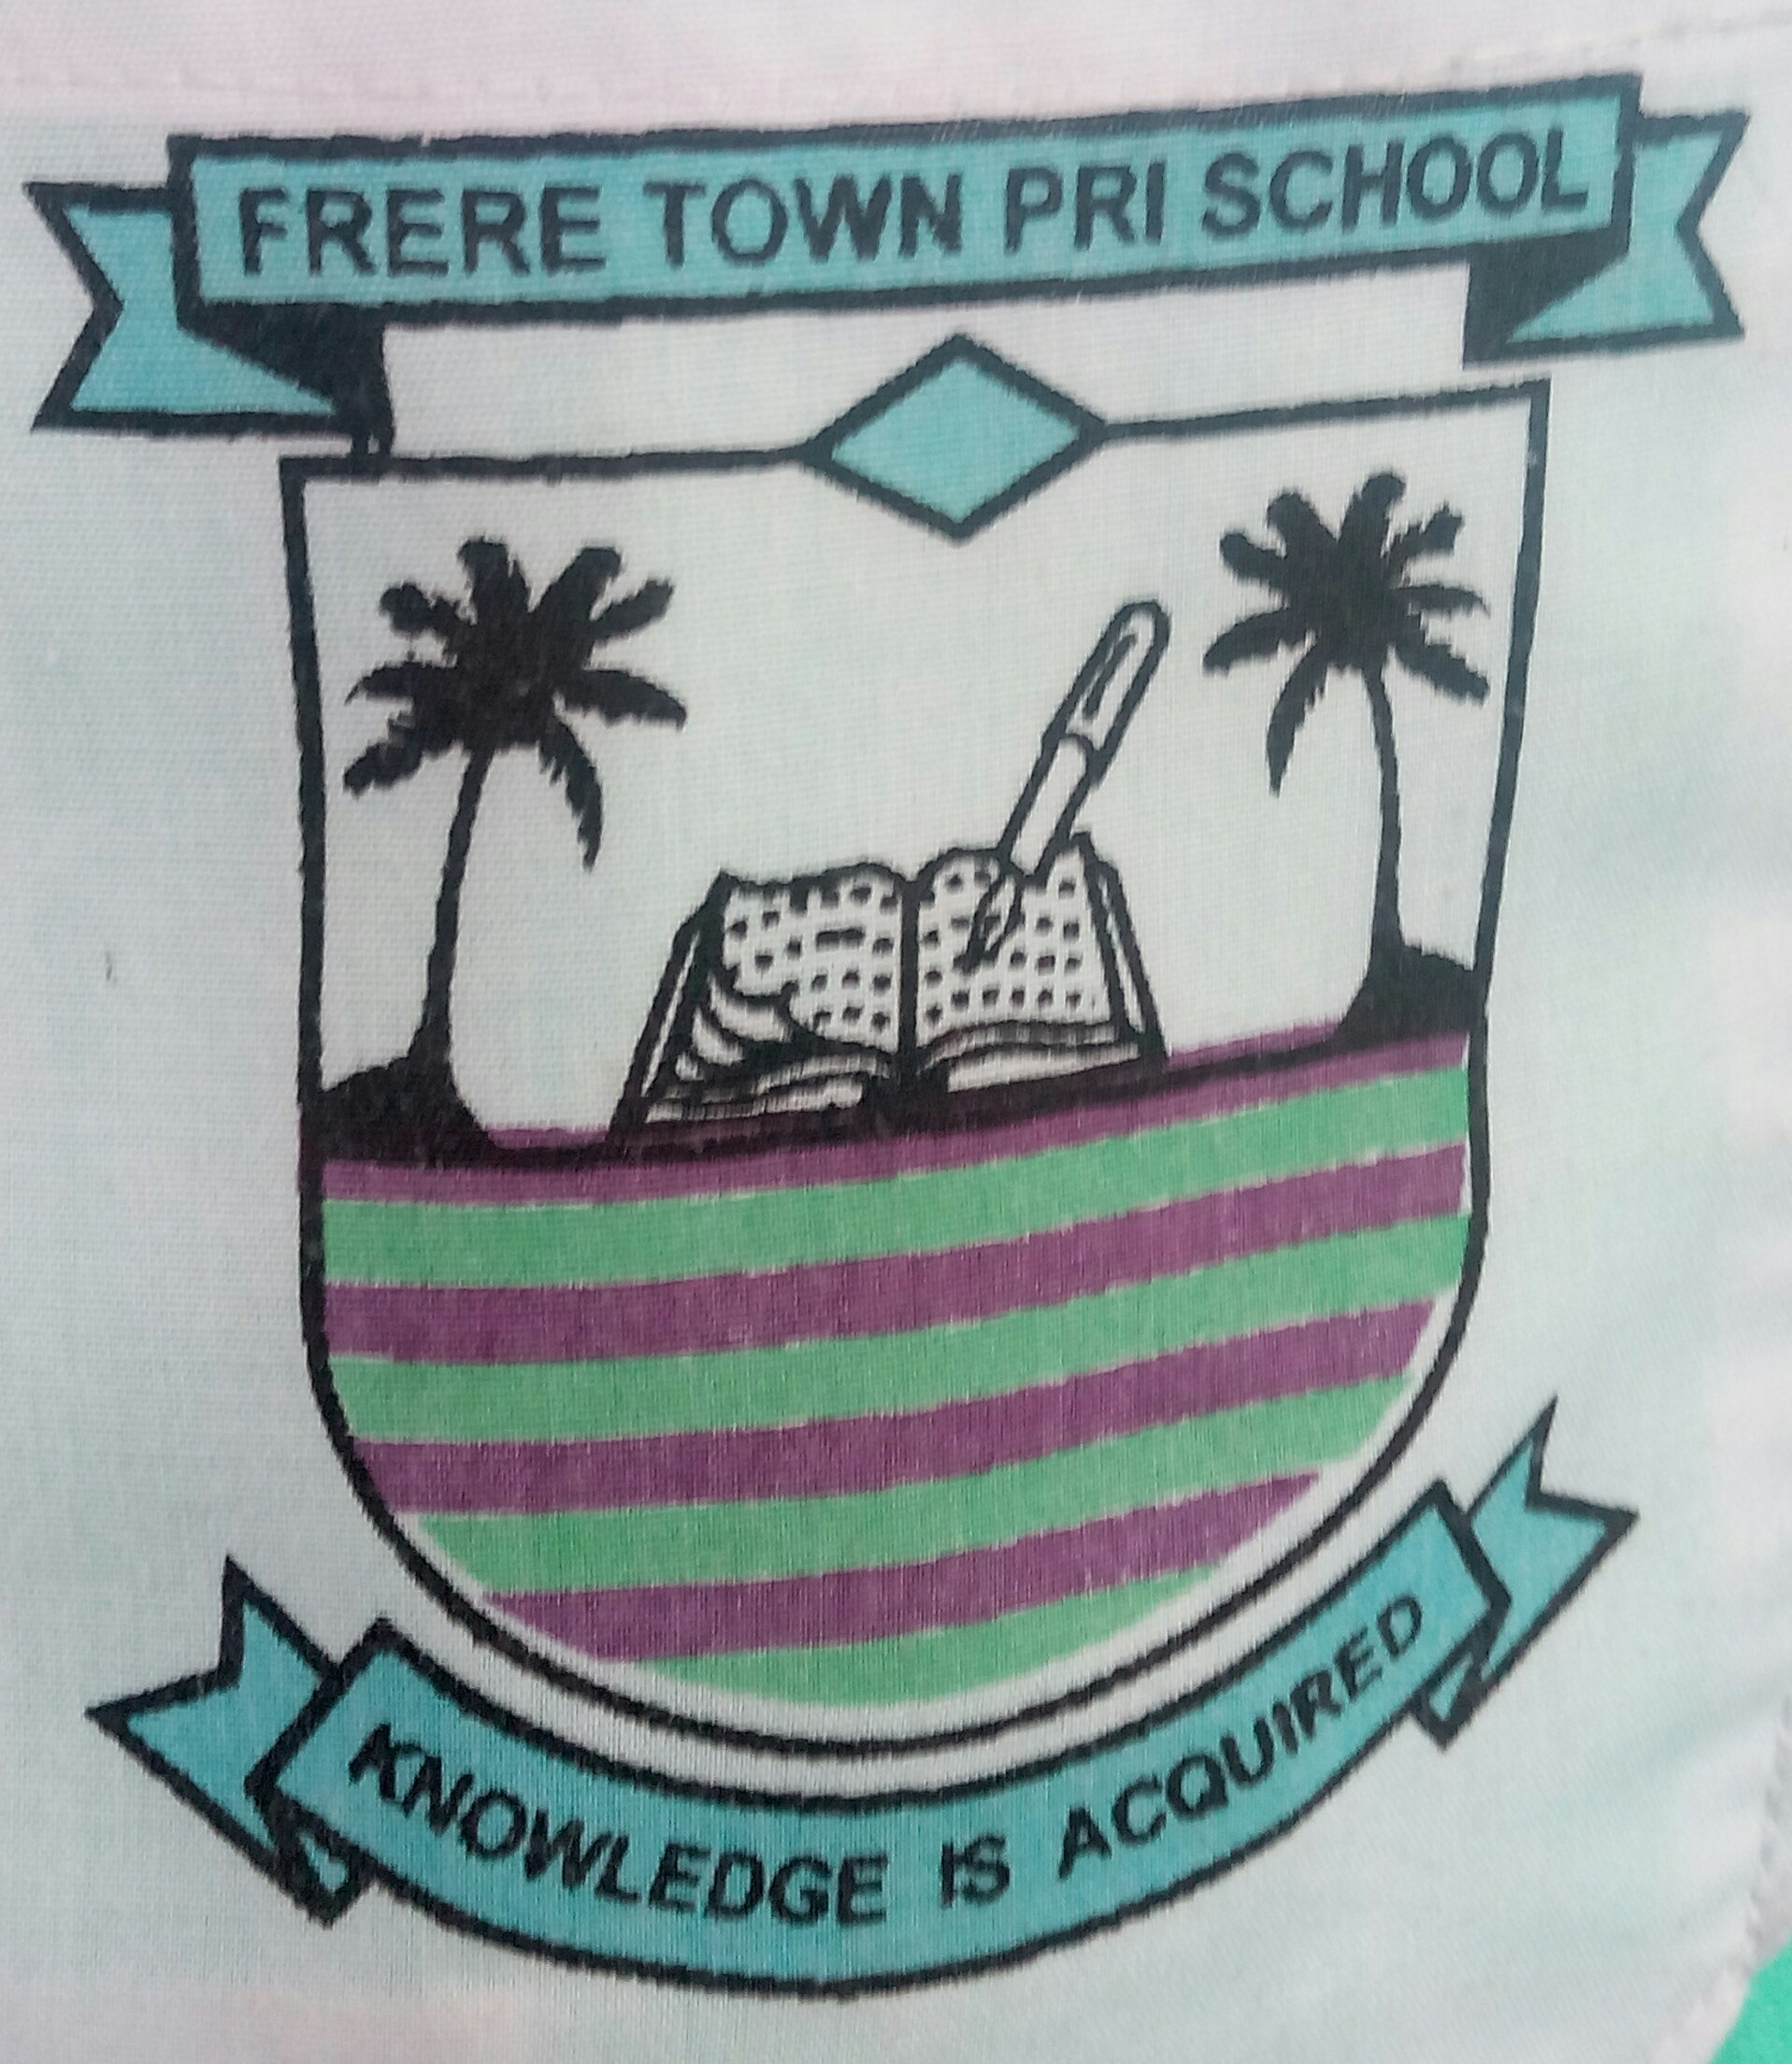 Freretown Primary School